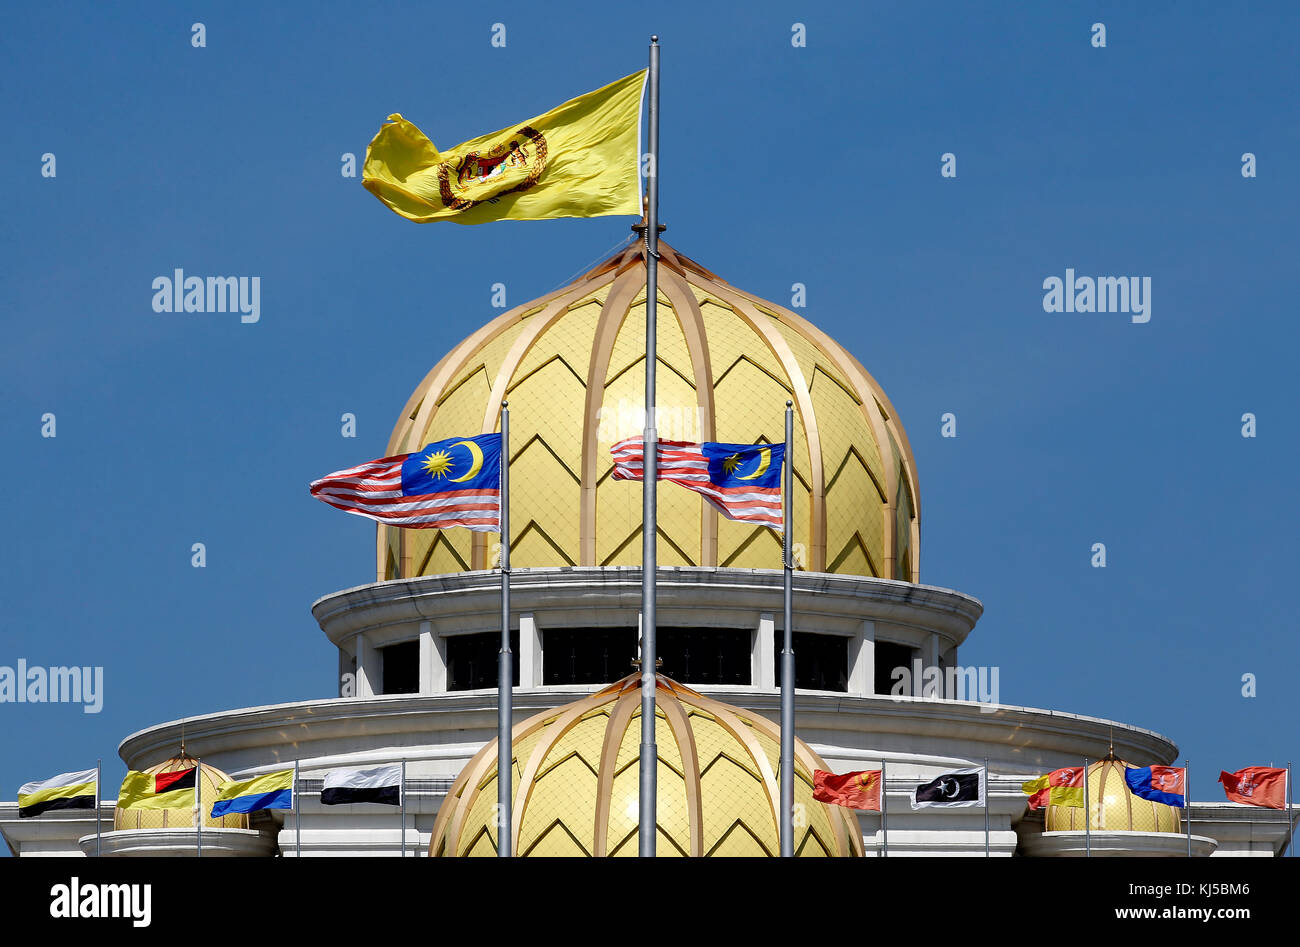 General view of the front entrance of the Malaysia King's Palace in Kuala Lumpur, February 12, 2017. - Stock Image